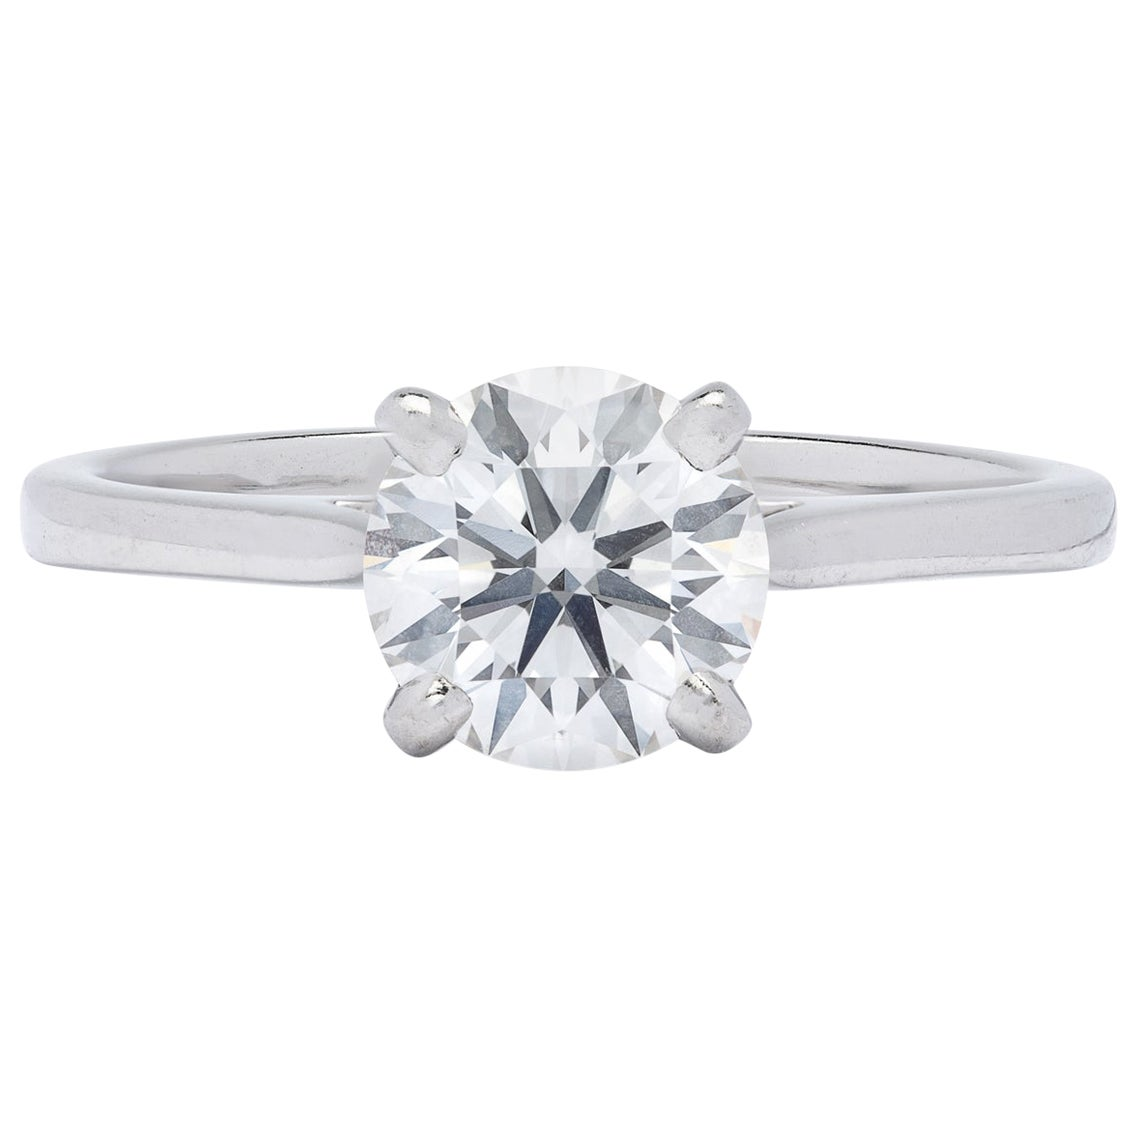 Gorgeous .86 Carat GIA F/VVS1 Diamond Ring